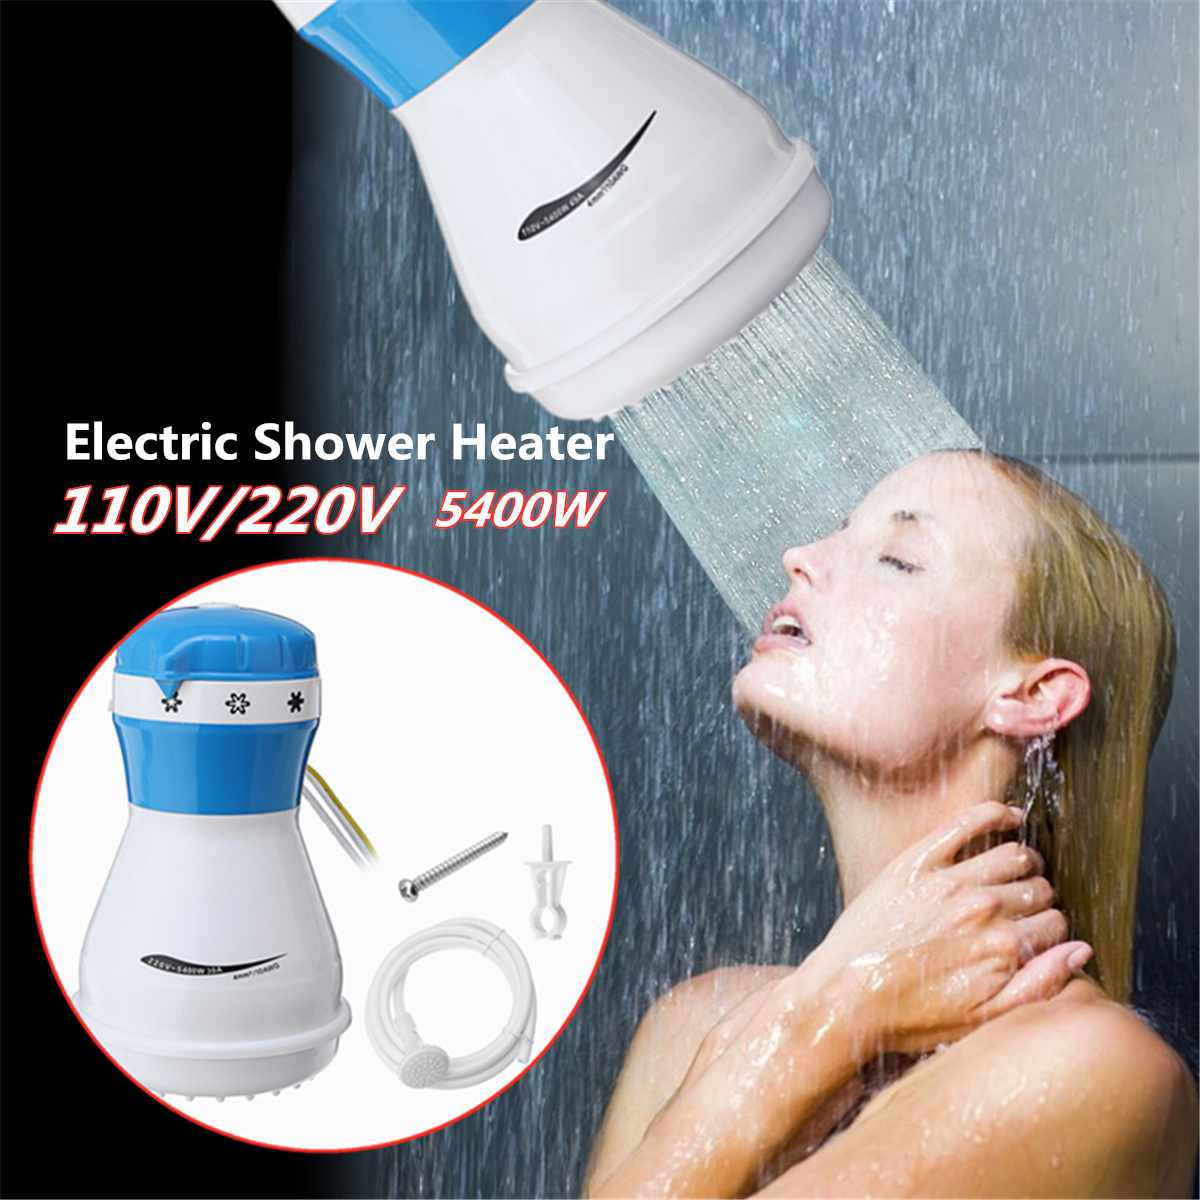 5400W 110V/220V Electric Shower Heater Instant Hot Faucet Bathroom Water Heating Instantaneous Water Heater image